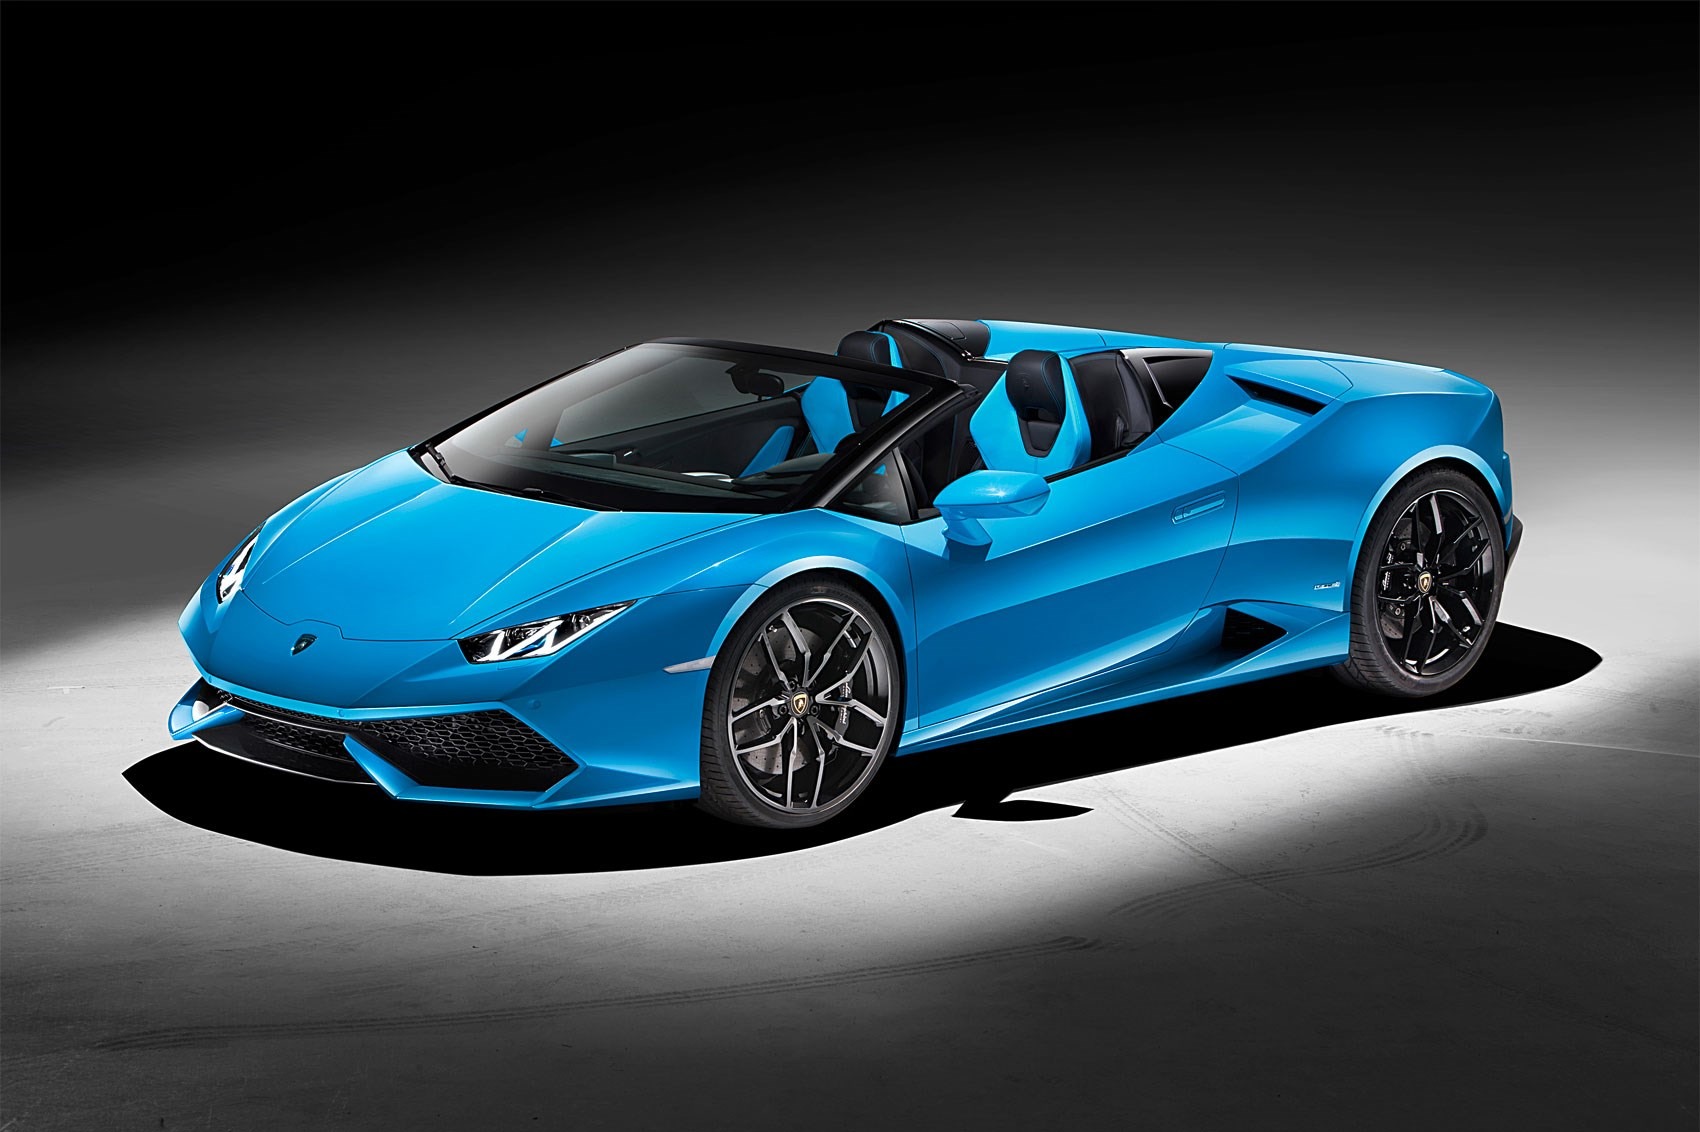 Lamborghini Huracan Spyder Roof Is A Fabric Soft Top Takes 17 Seconds To Stow